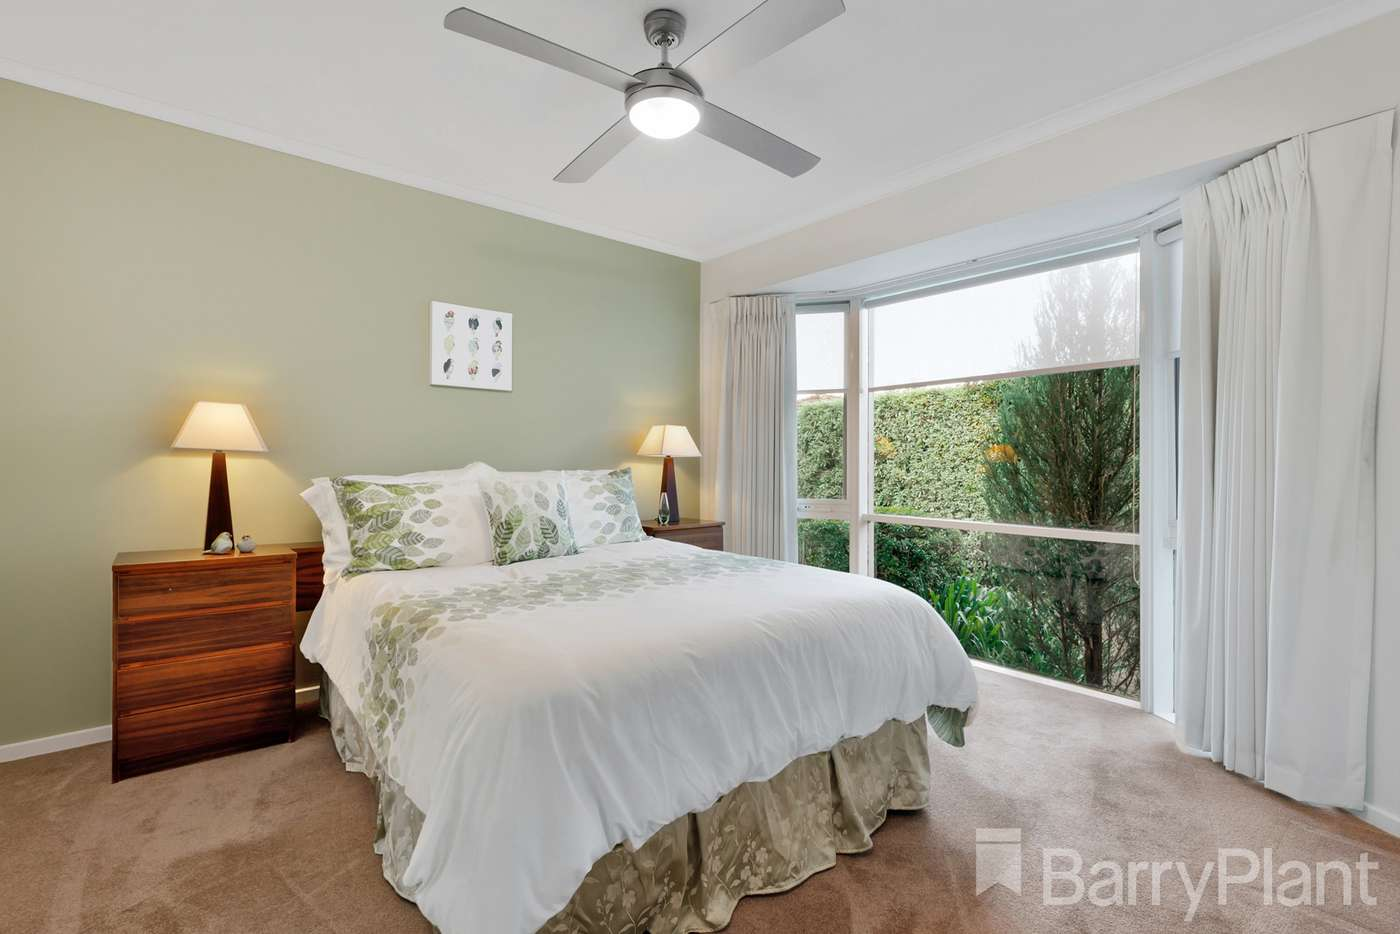 Fifth view of Homely unit listing, 3/26 Munro Avenue, Mount Waverley VIC 3149